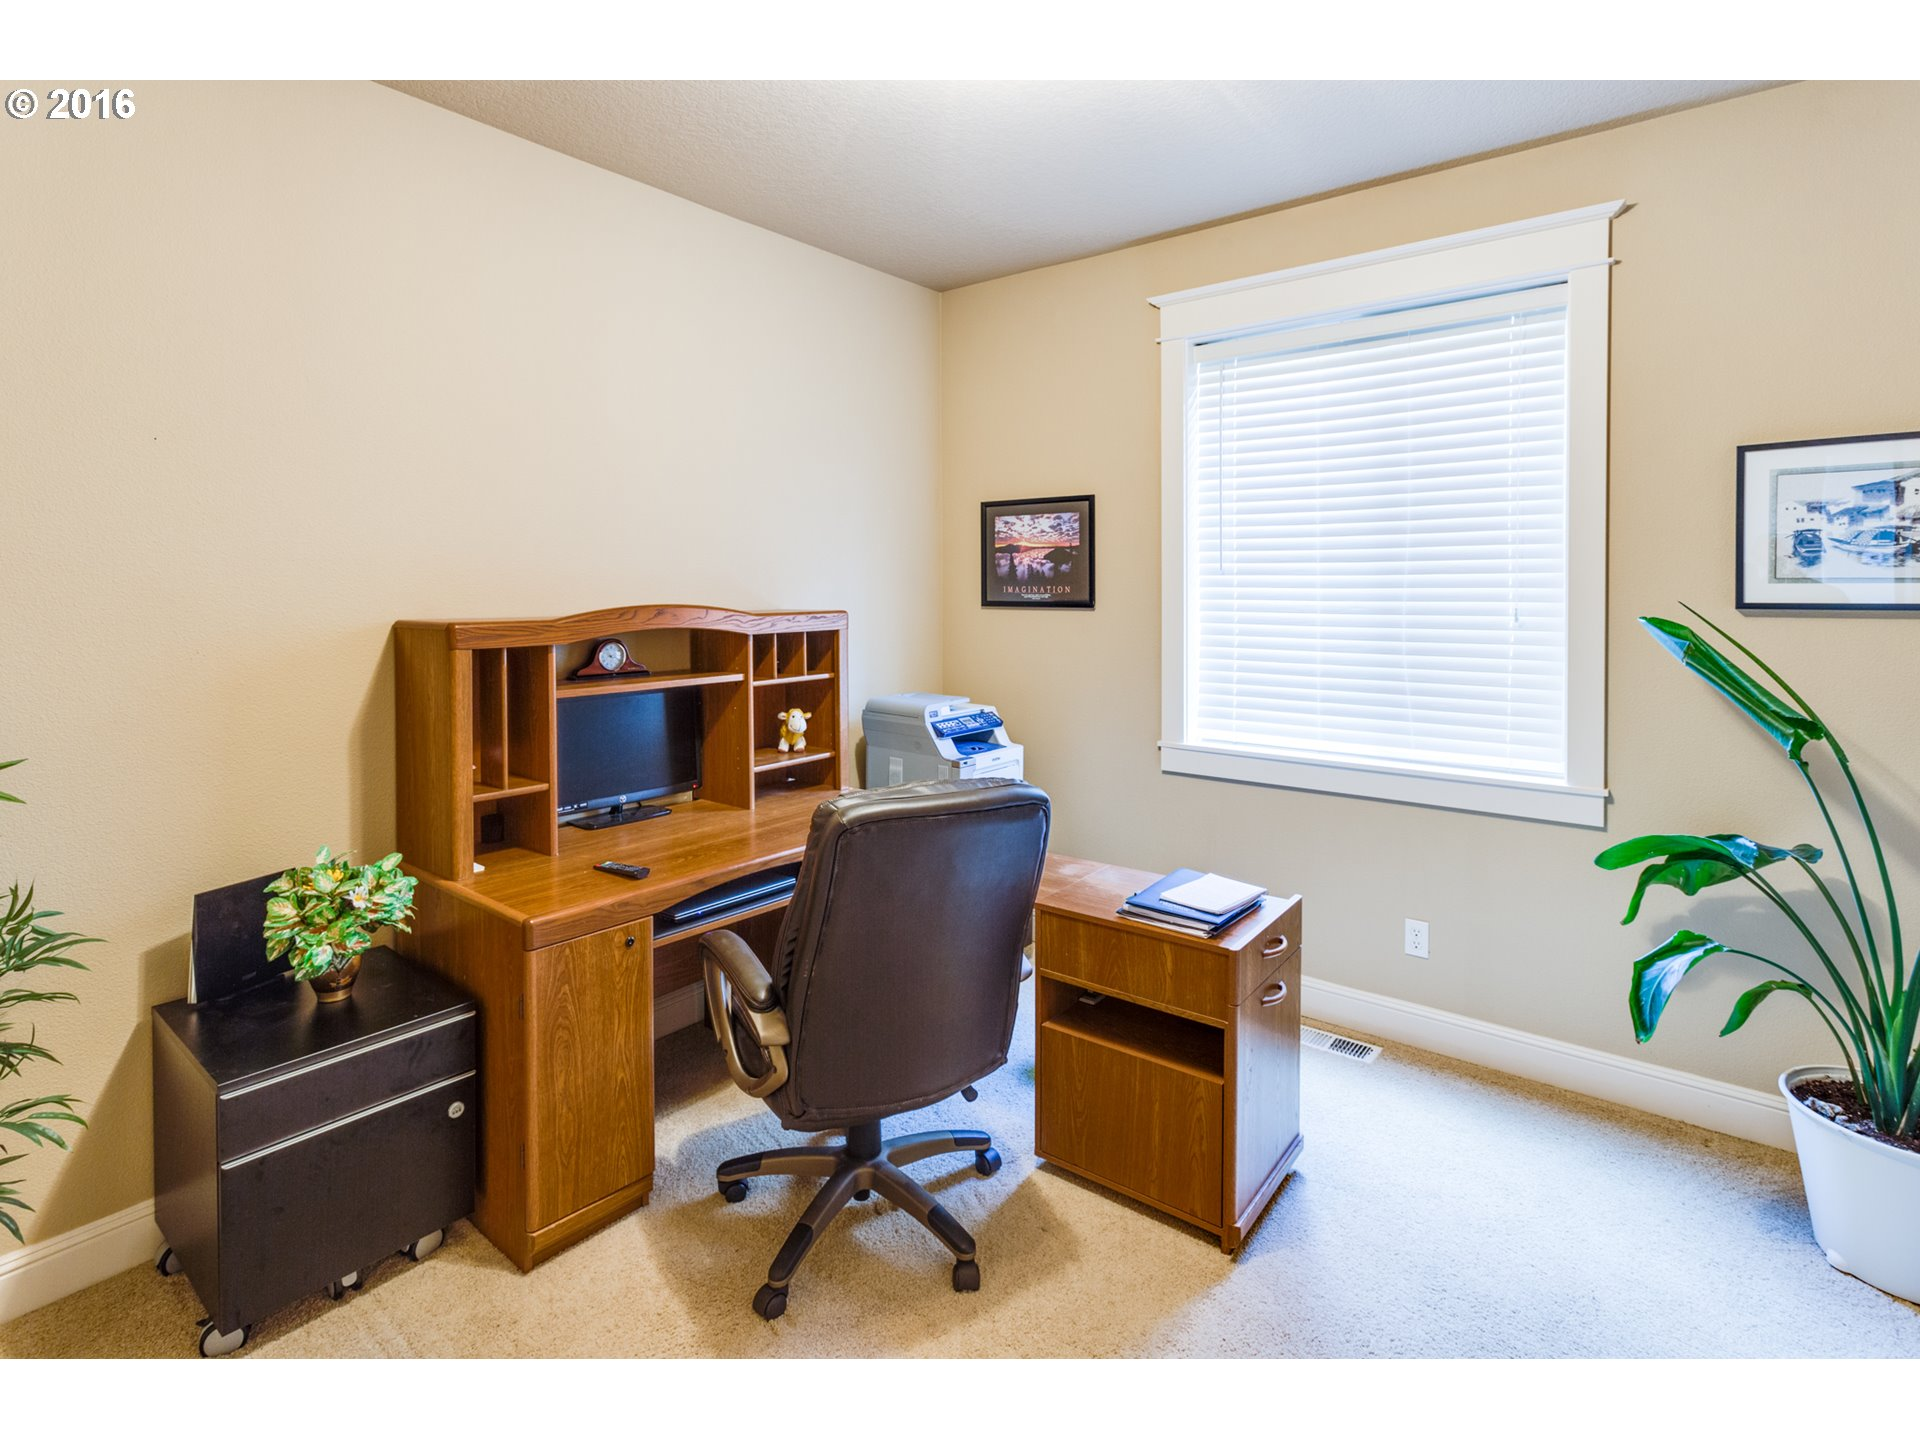 OFFICE MATT MORRIS 360-773-7333